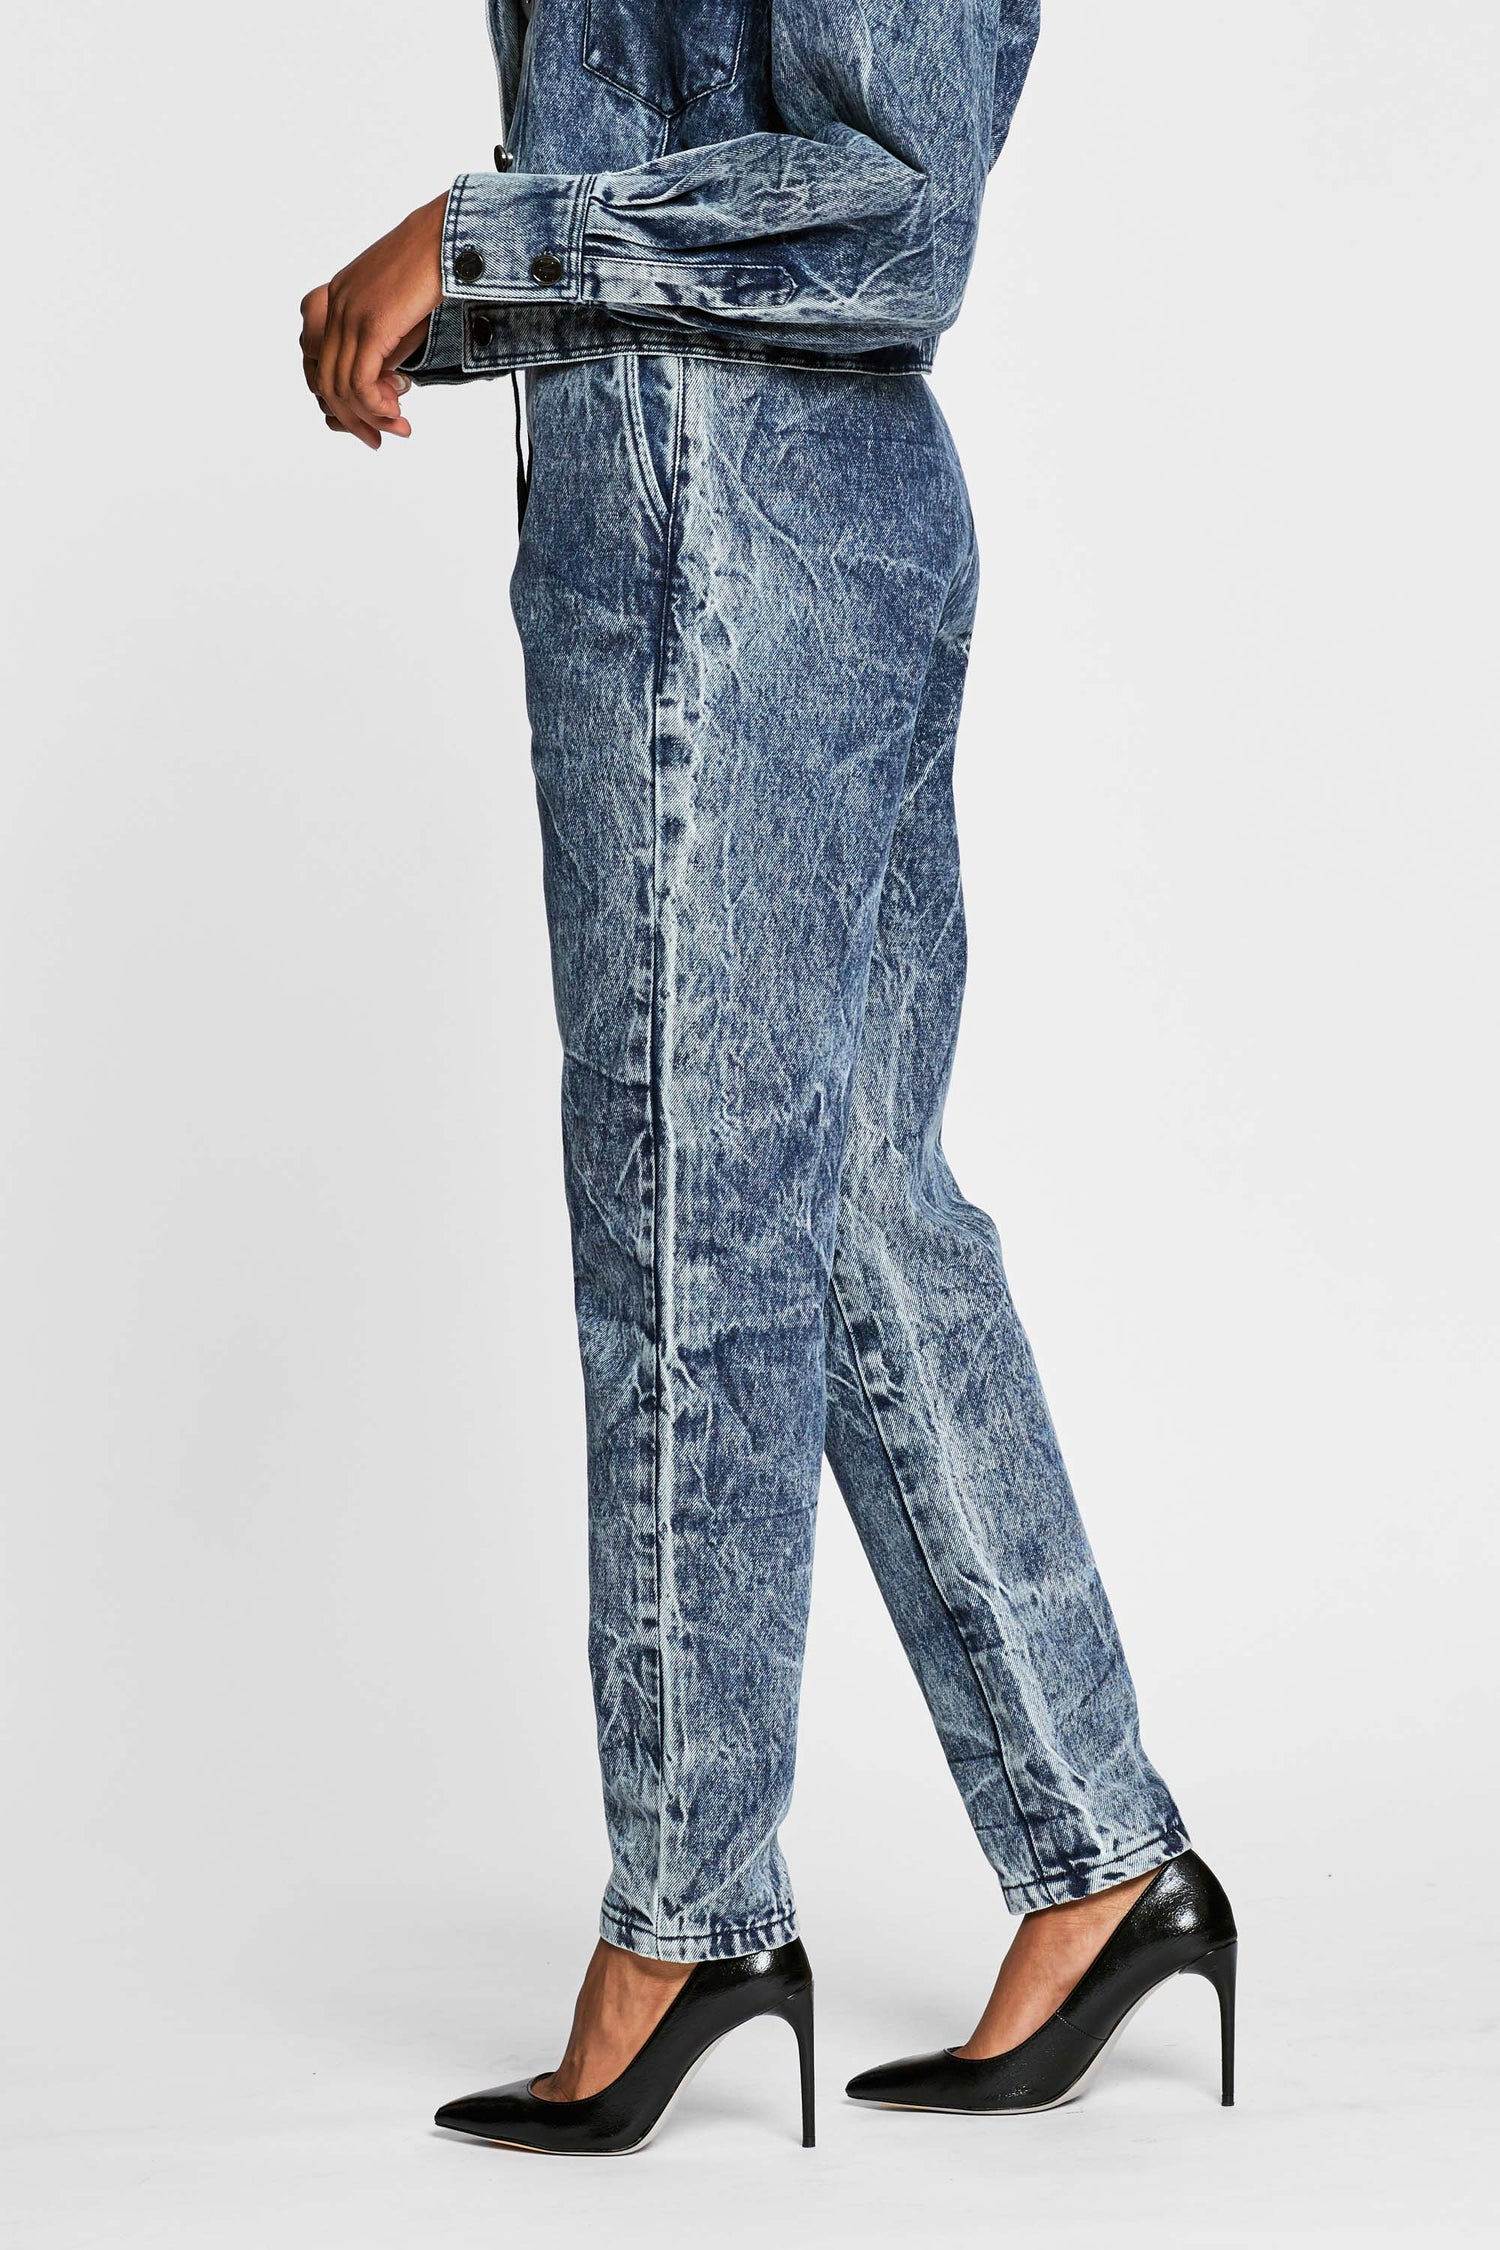 https://cdn.shopify.com/s/files/1/2973/0680/files/wate_denim_track_pant_31451ffe-e442-4de9-9d8b-d262a6b4f5b7.mp4?8615471476183325789